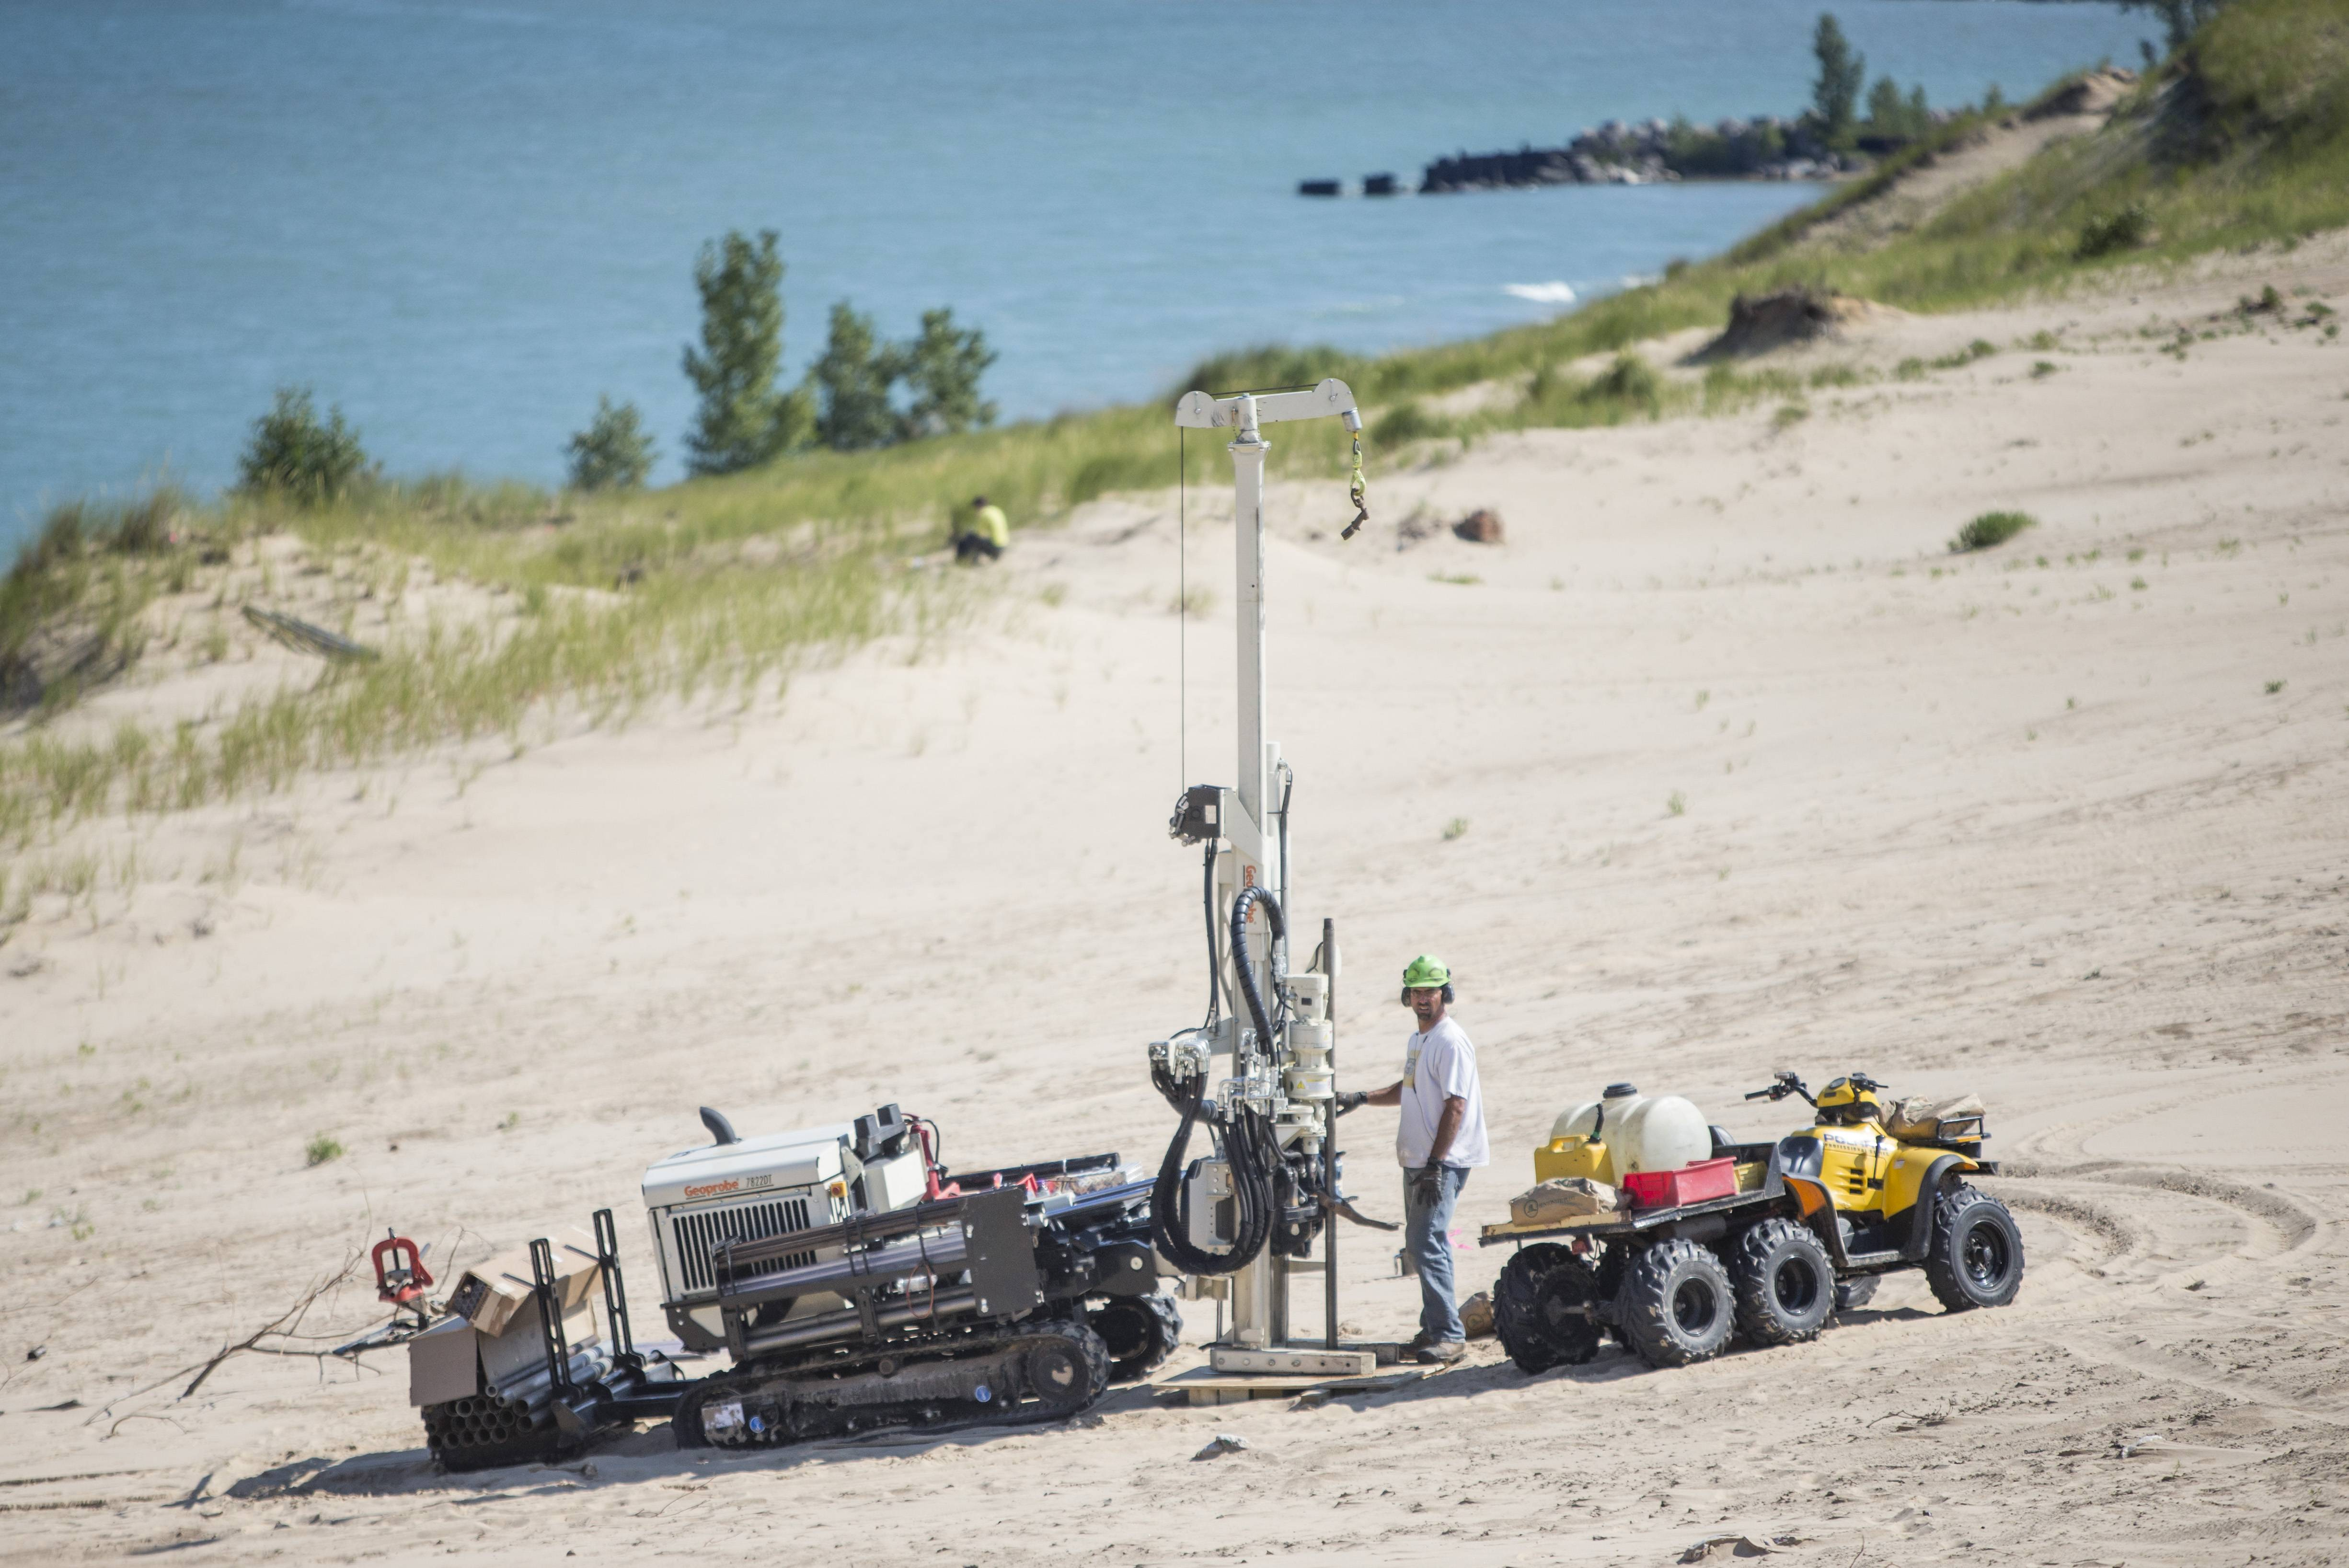 A researcher uses large equipment to study Indiana Dunes National Lakeshore's Mount Baldy on Thursday in Michigan City, Ind. The dune has been closed for 13 months.